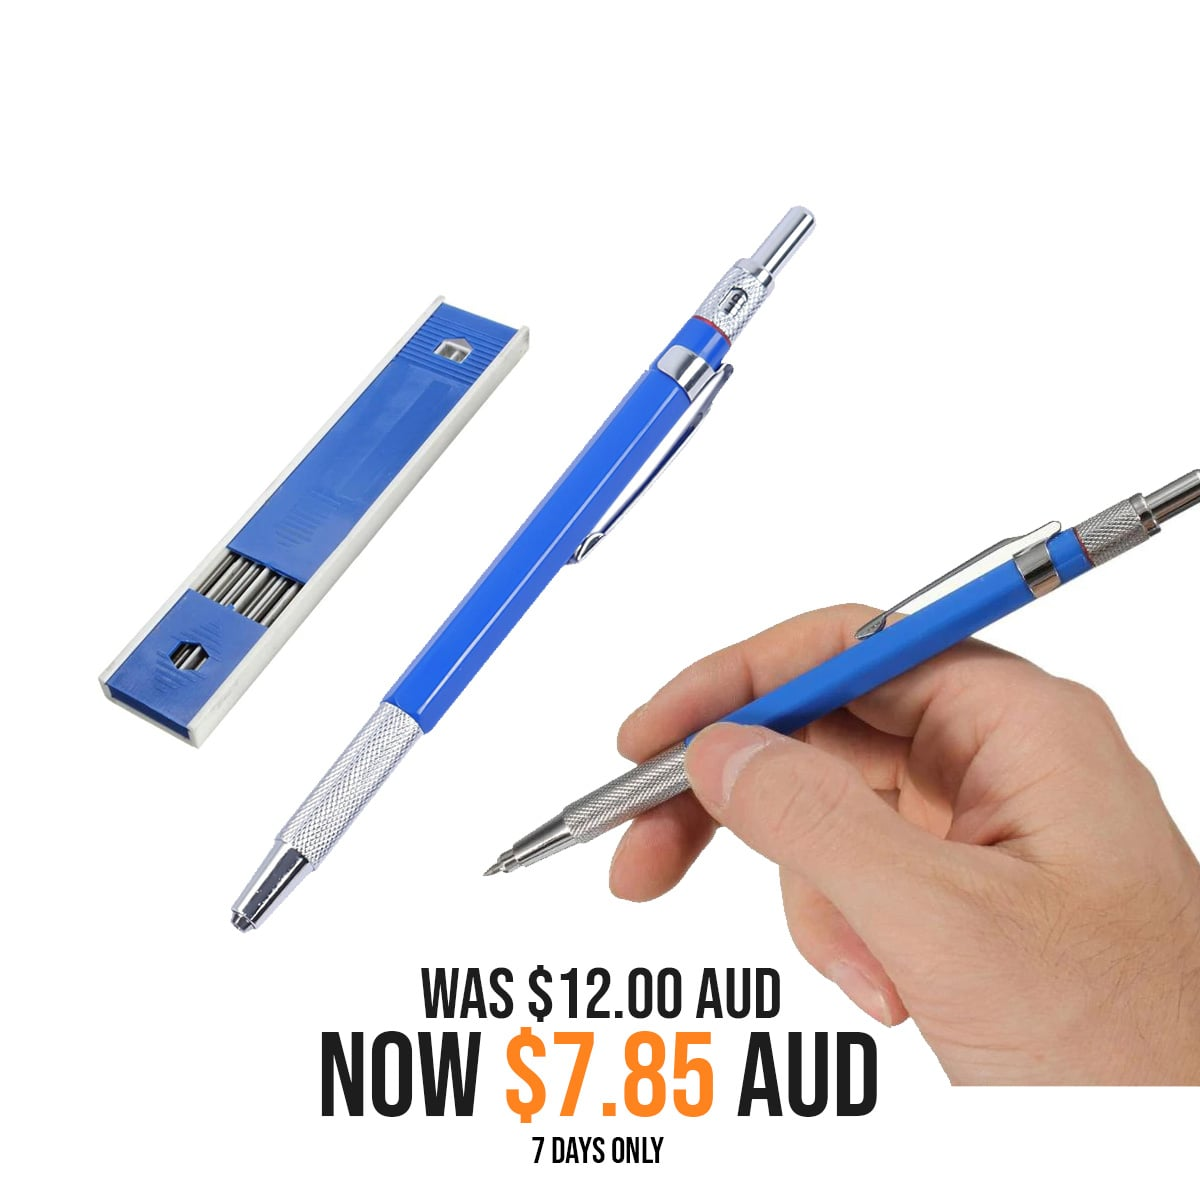 mechanical clutch architectural pencil for drafting and sketching